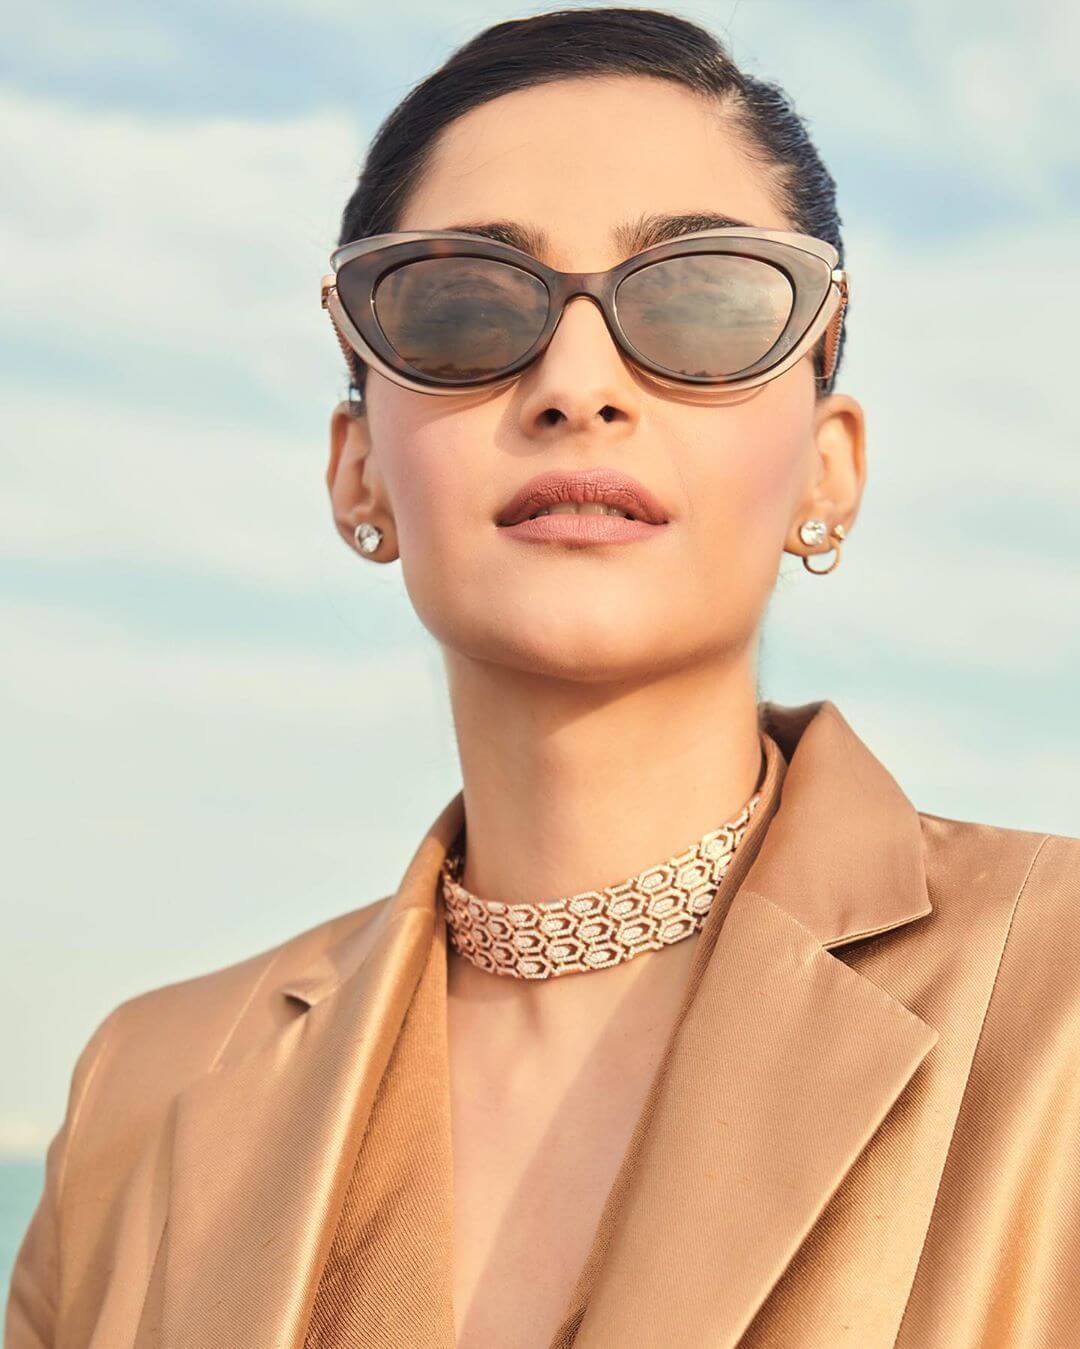 Sonam Kapoor Biography Age Family Latest Hot Photos 2020, Photos, Videos, Full Movie Watch Online Free Down Load Leaked By Tamilrockers, Down Load Torrent Telegram File Link